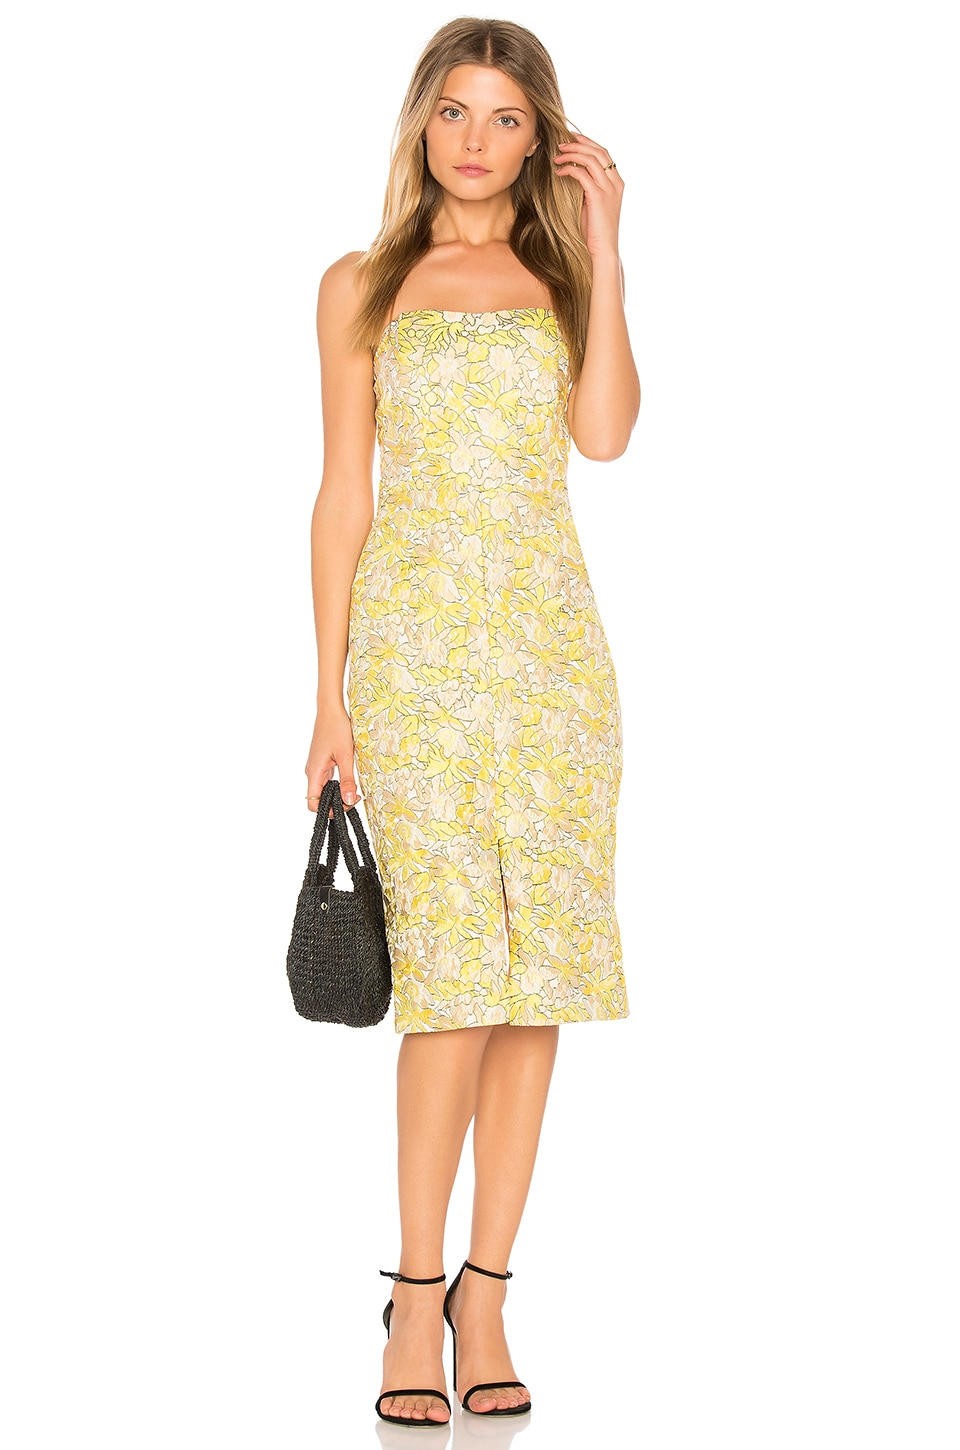 BB Dakota RSVP by BB Dakota Gretta Dress in Limoncello